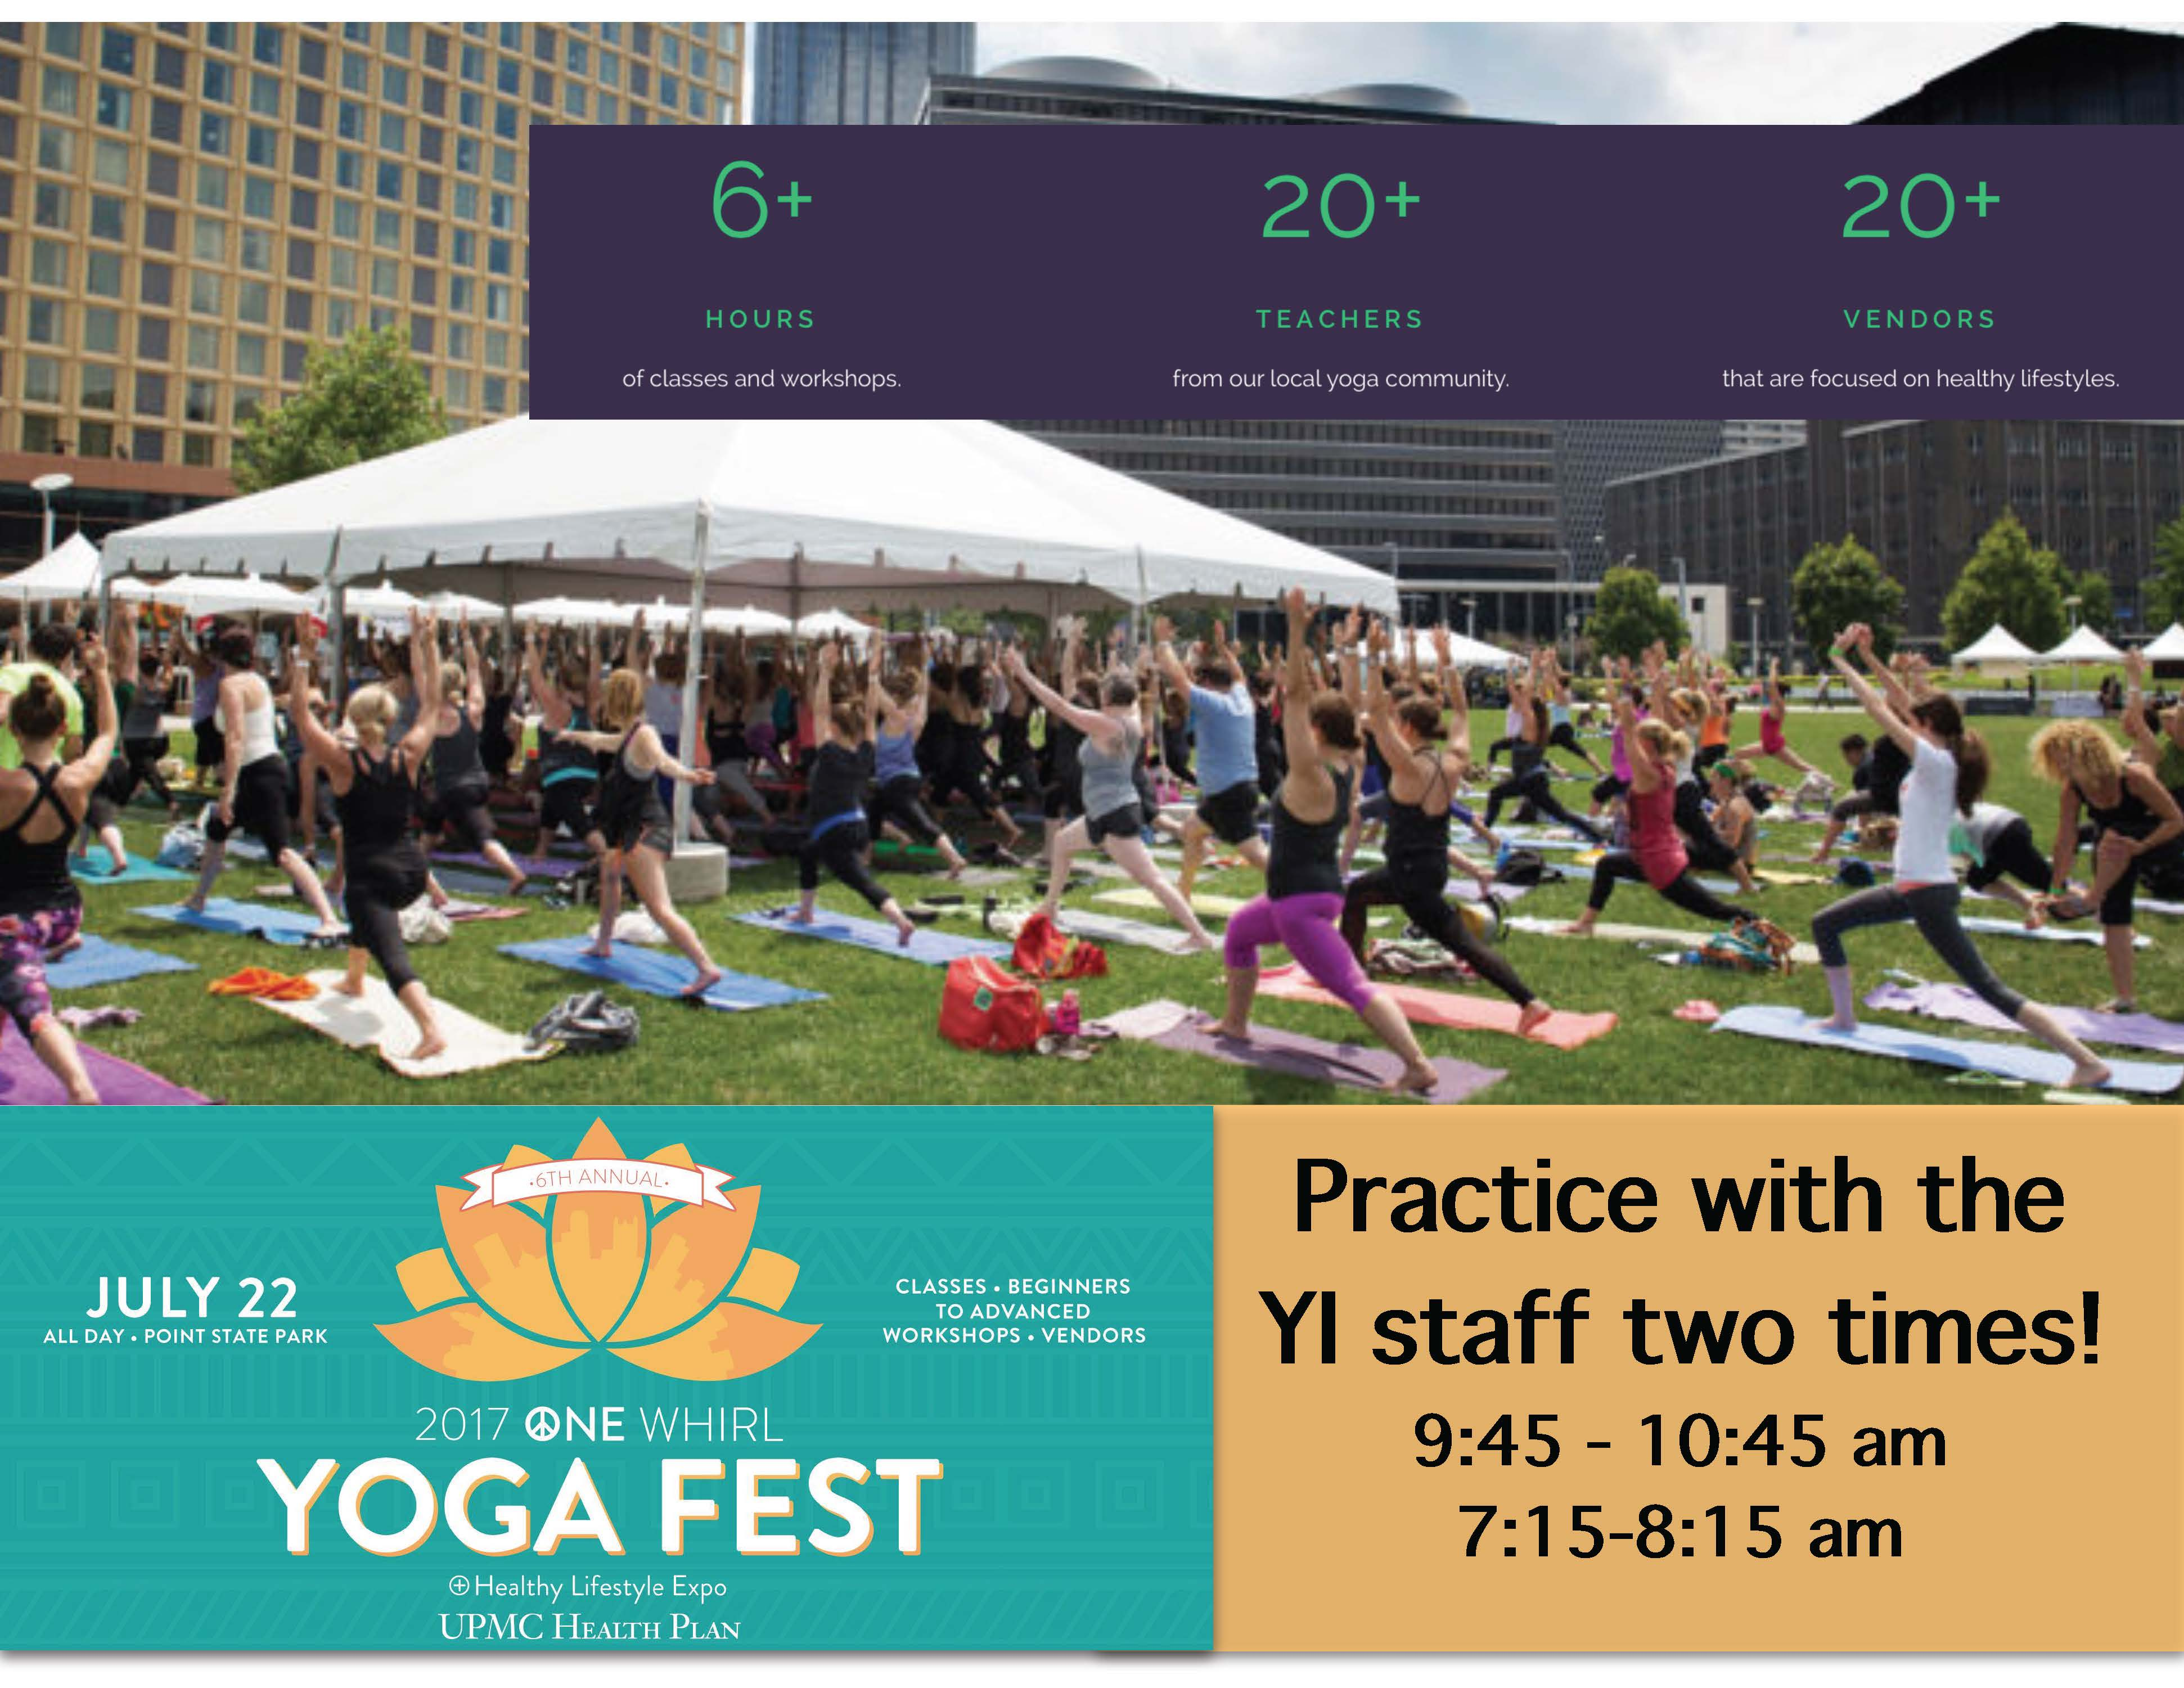 Yoga Fest: 2017 One Whirl Healthy Lifestyle Expo